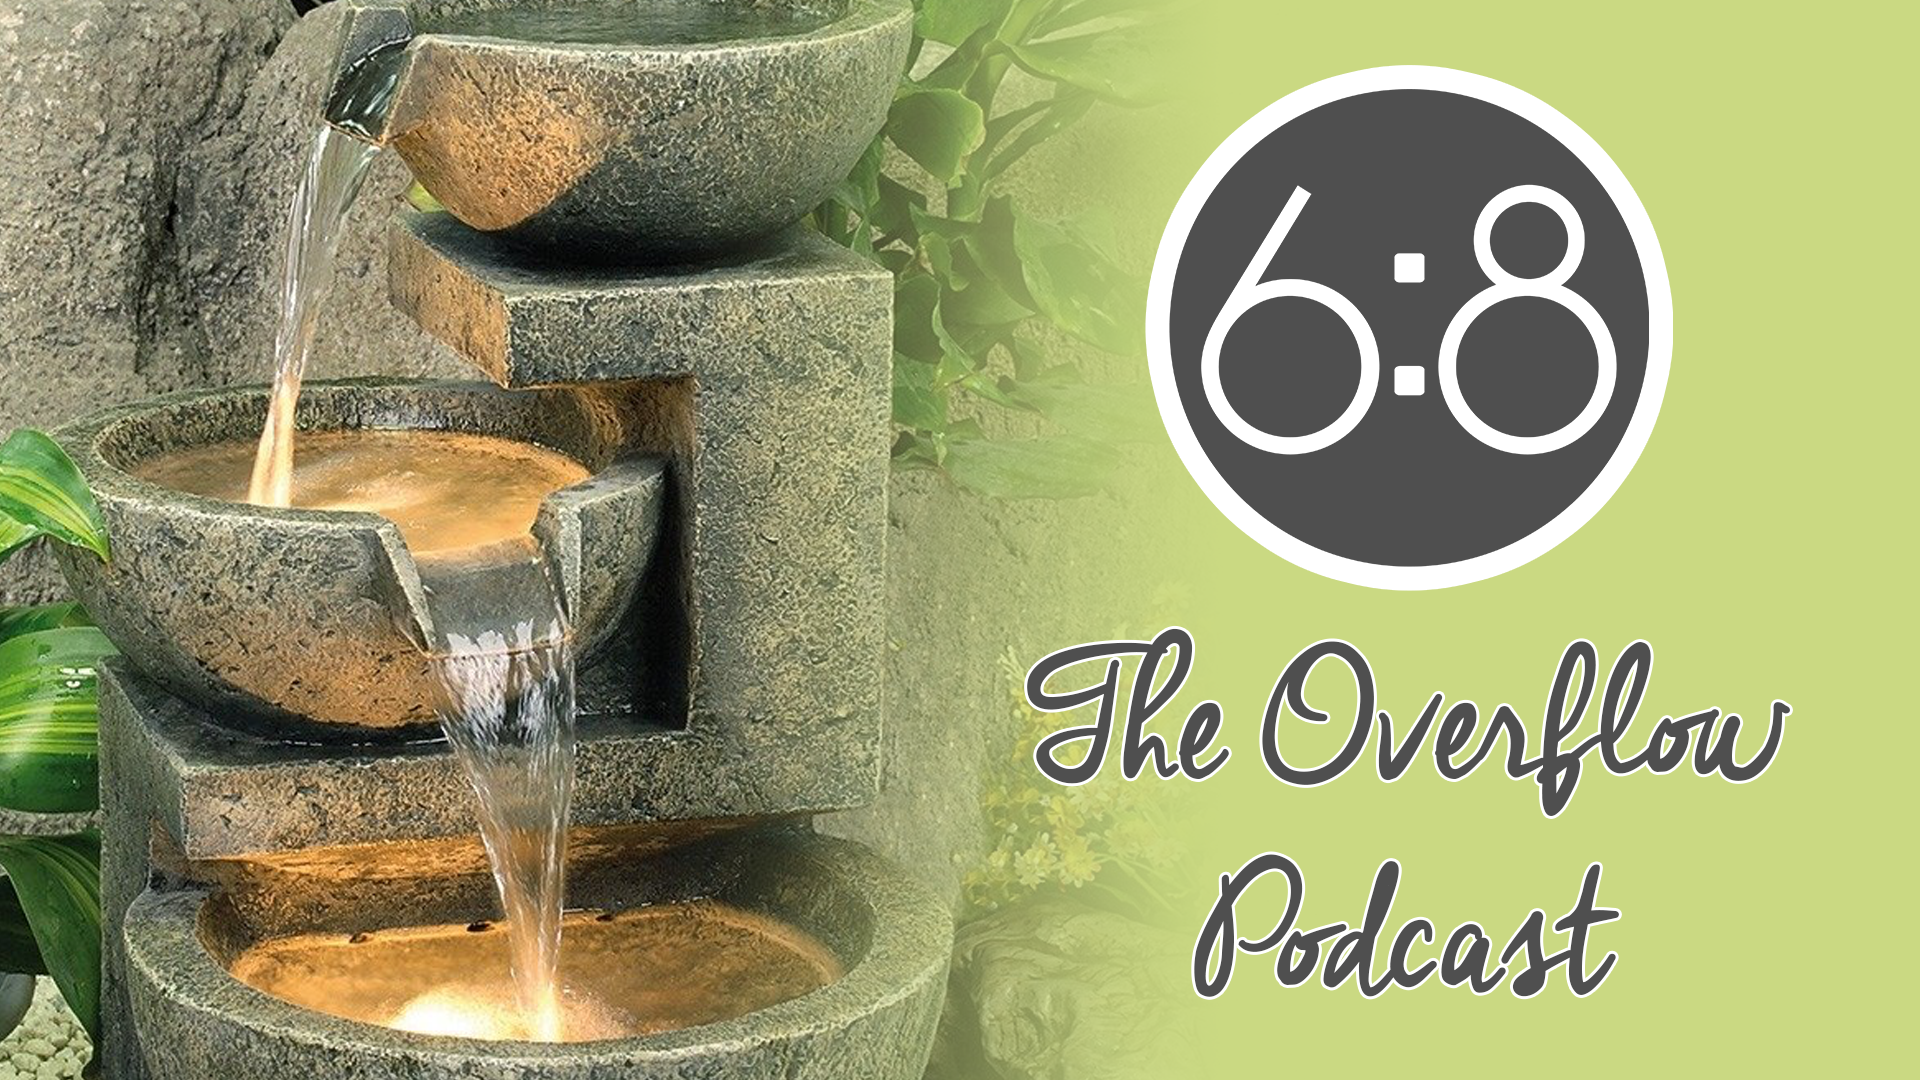 The Overflow Podcast, Episode 00035: Like Christ, Week 6, Day 3